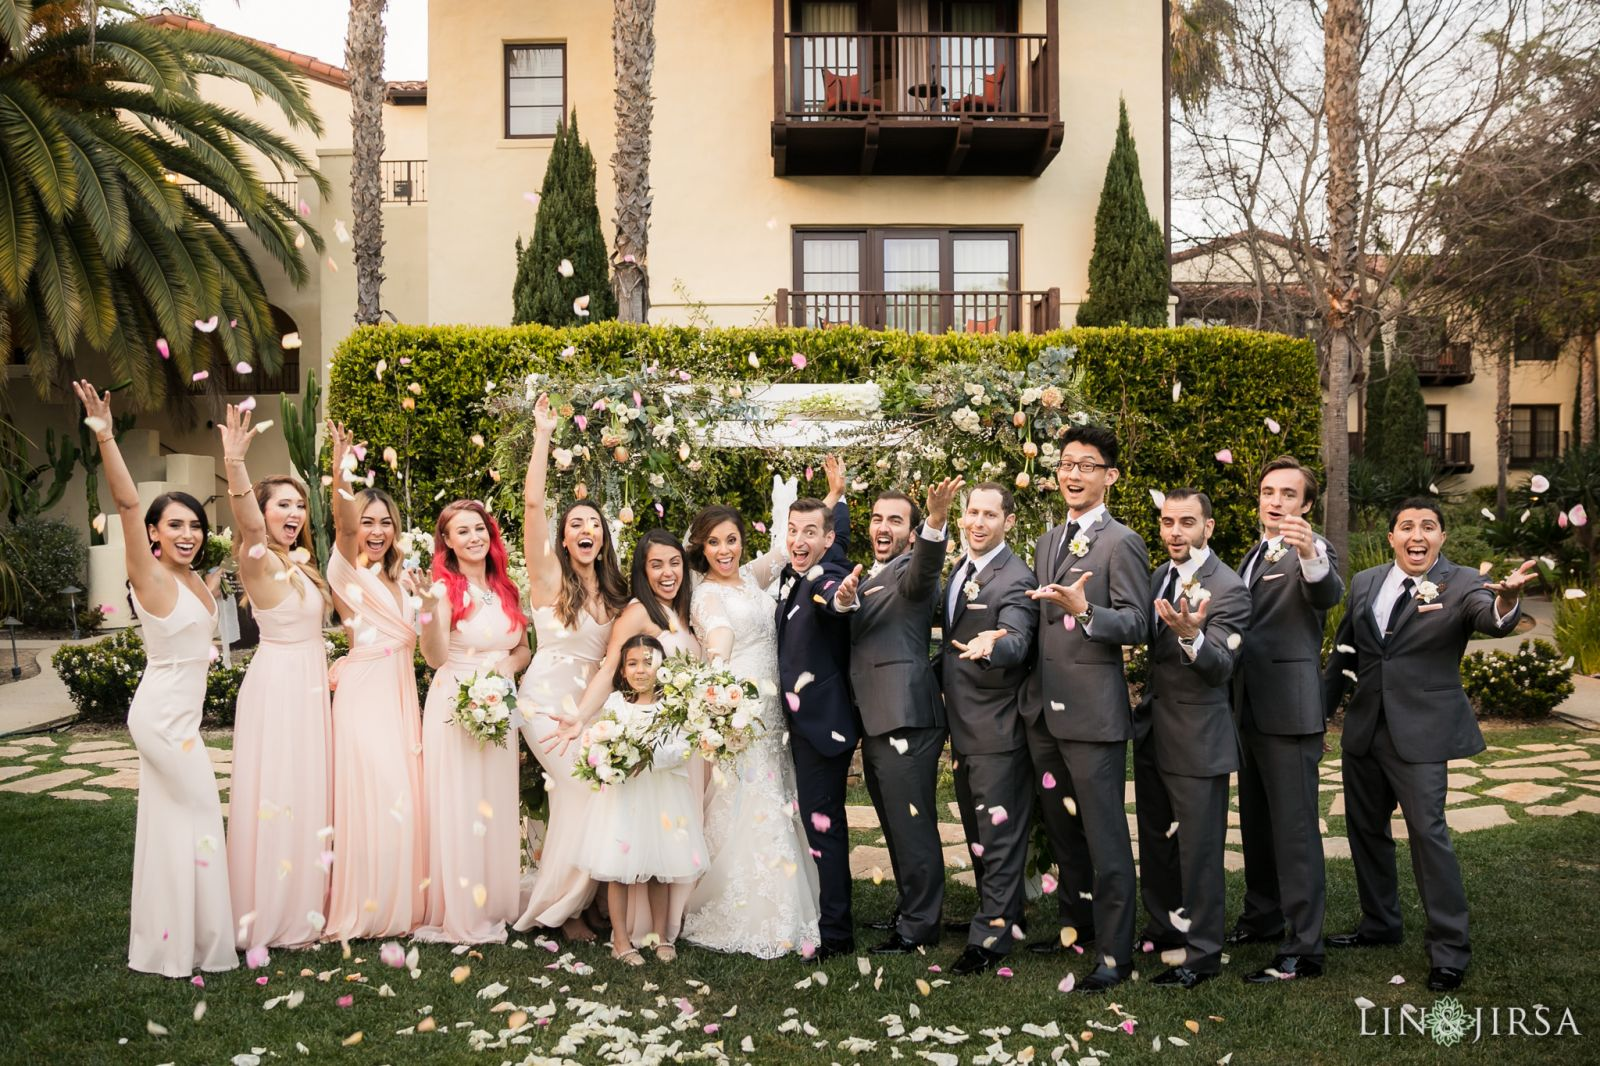 Bridal party photo fun tossing rose petals   at the Estancia Hotel in La Jolla. Bridal Beauty by Vanity Belle in Orange County (Costa Mesa) and San Diego (La Jolla) thevanitybelle.com. Photography by Lin and Jirsa.